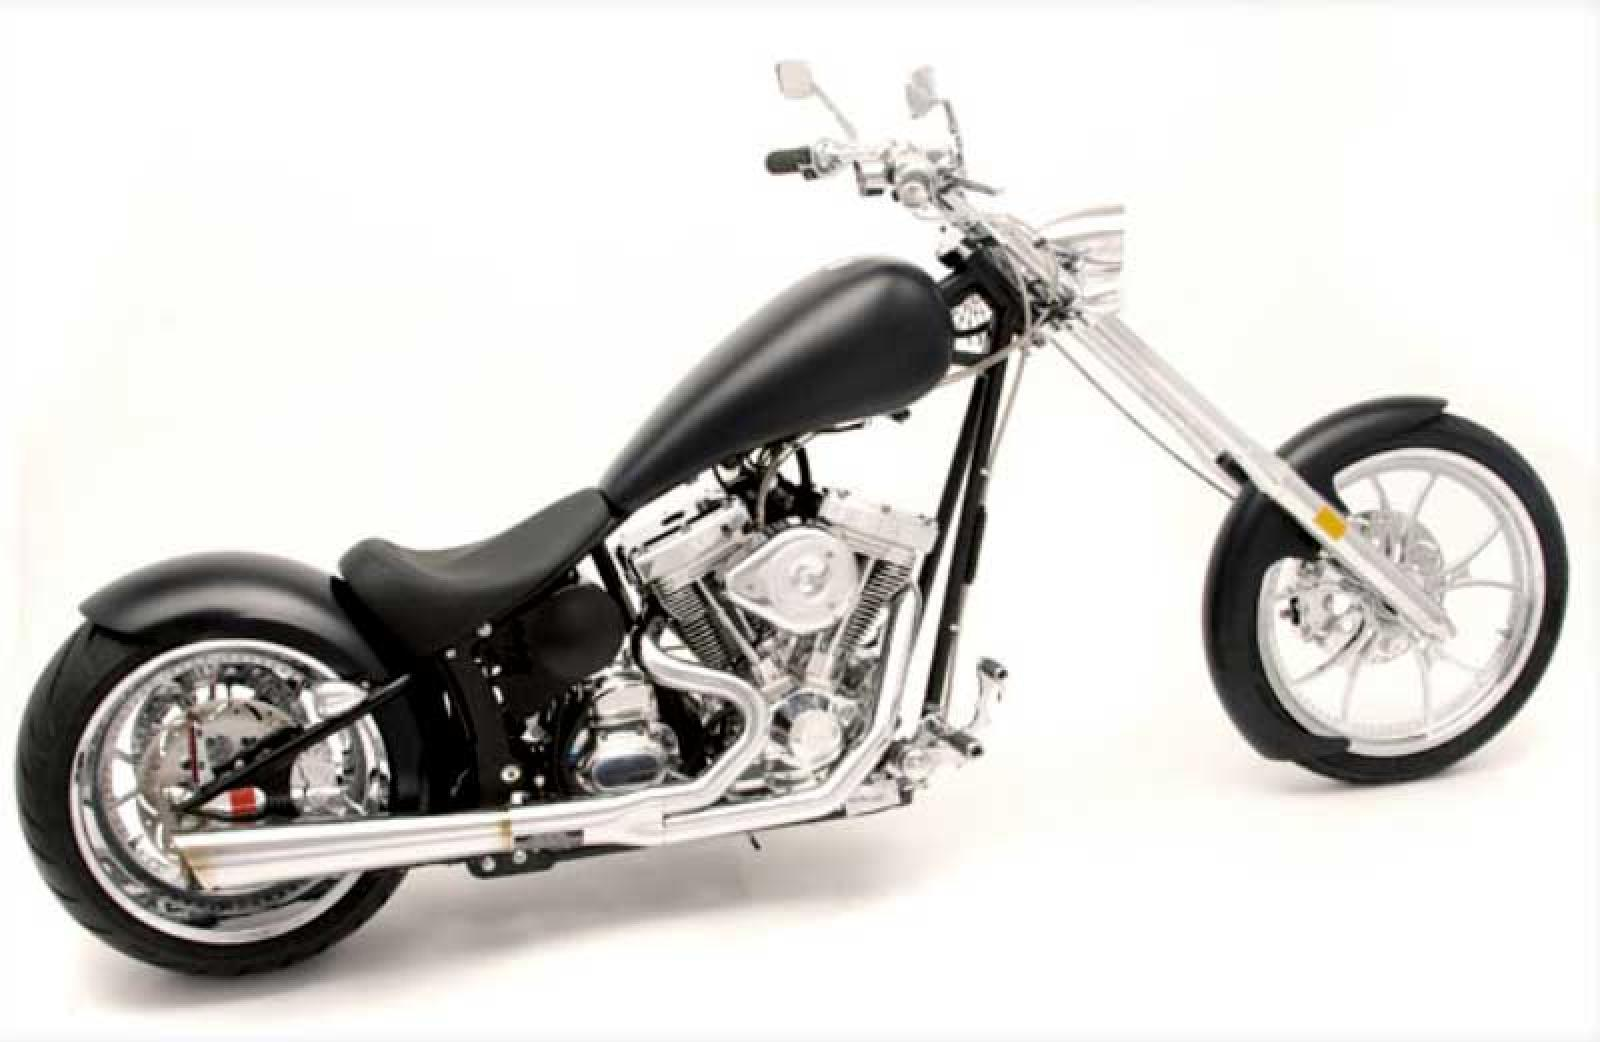 Big Bear Choppers Screamin Demon 100 Carb images #63546